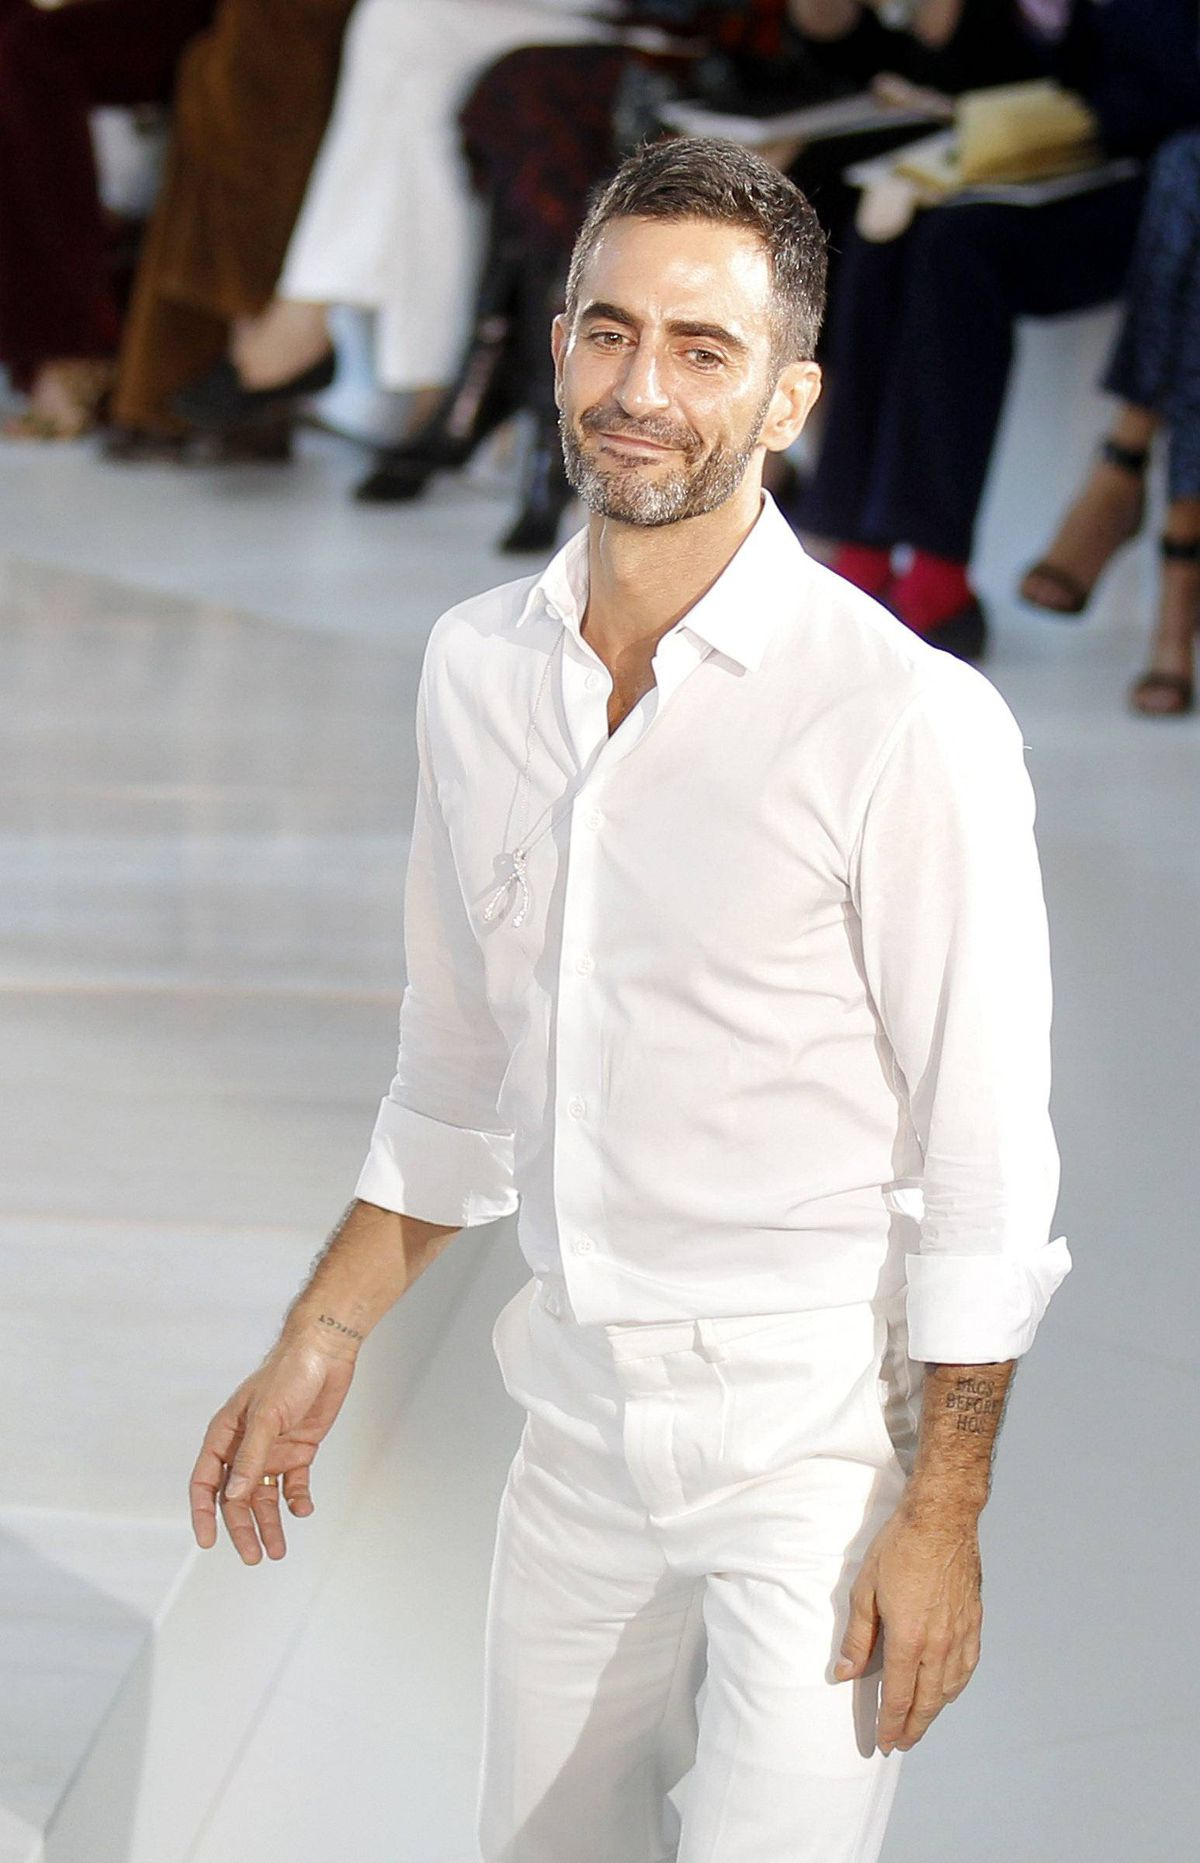 Meanwhile Marc Jacobs appeared entirely in white, a departure from his preferred black kilt. The fashion industry pegs Jacobs as the most likely successor to the Dior throne, which would force him to depart Louis Vuitton (both brands are owned by LVMH). With this collection, he proved ready for couture.